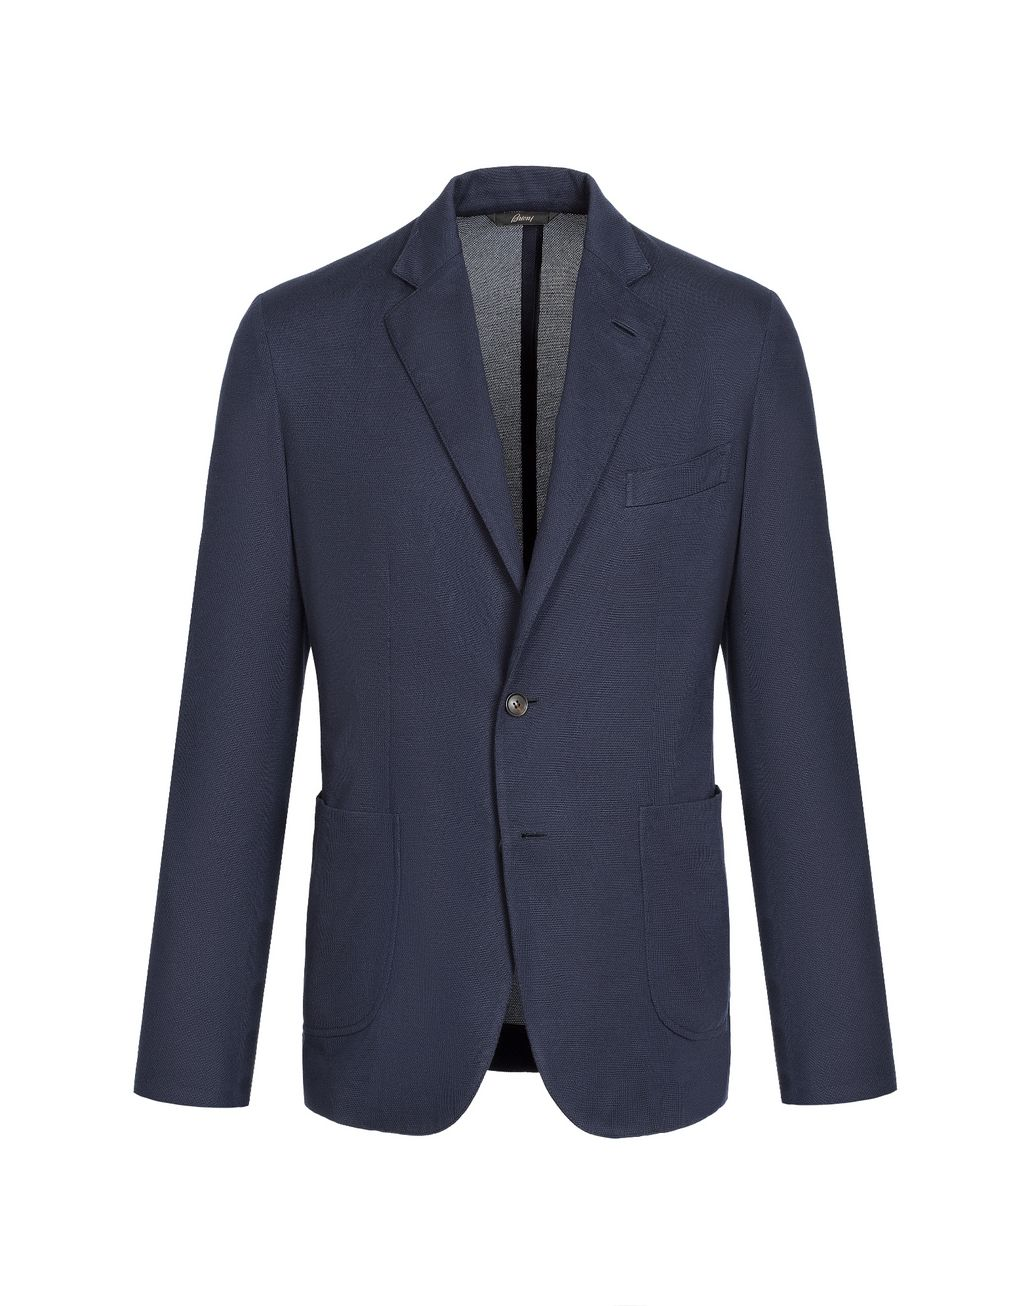 BRIONI Navy-Blue Silk Piqué Jacket Jackets [*** pickupInStoreShippingNotGuaranteed_info ***] f